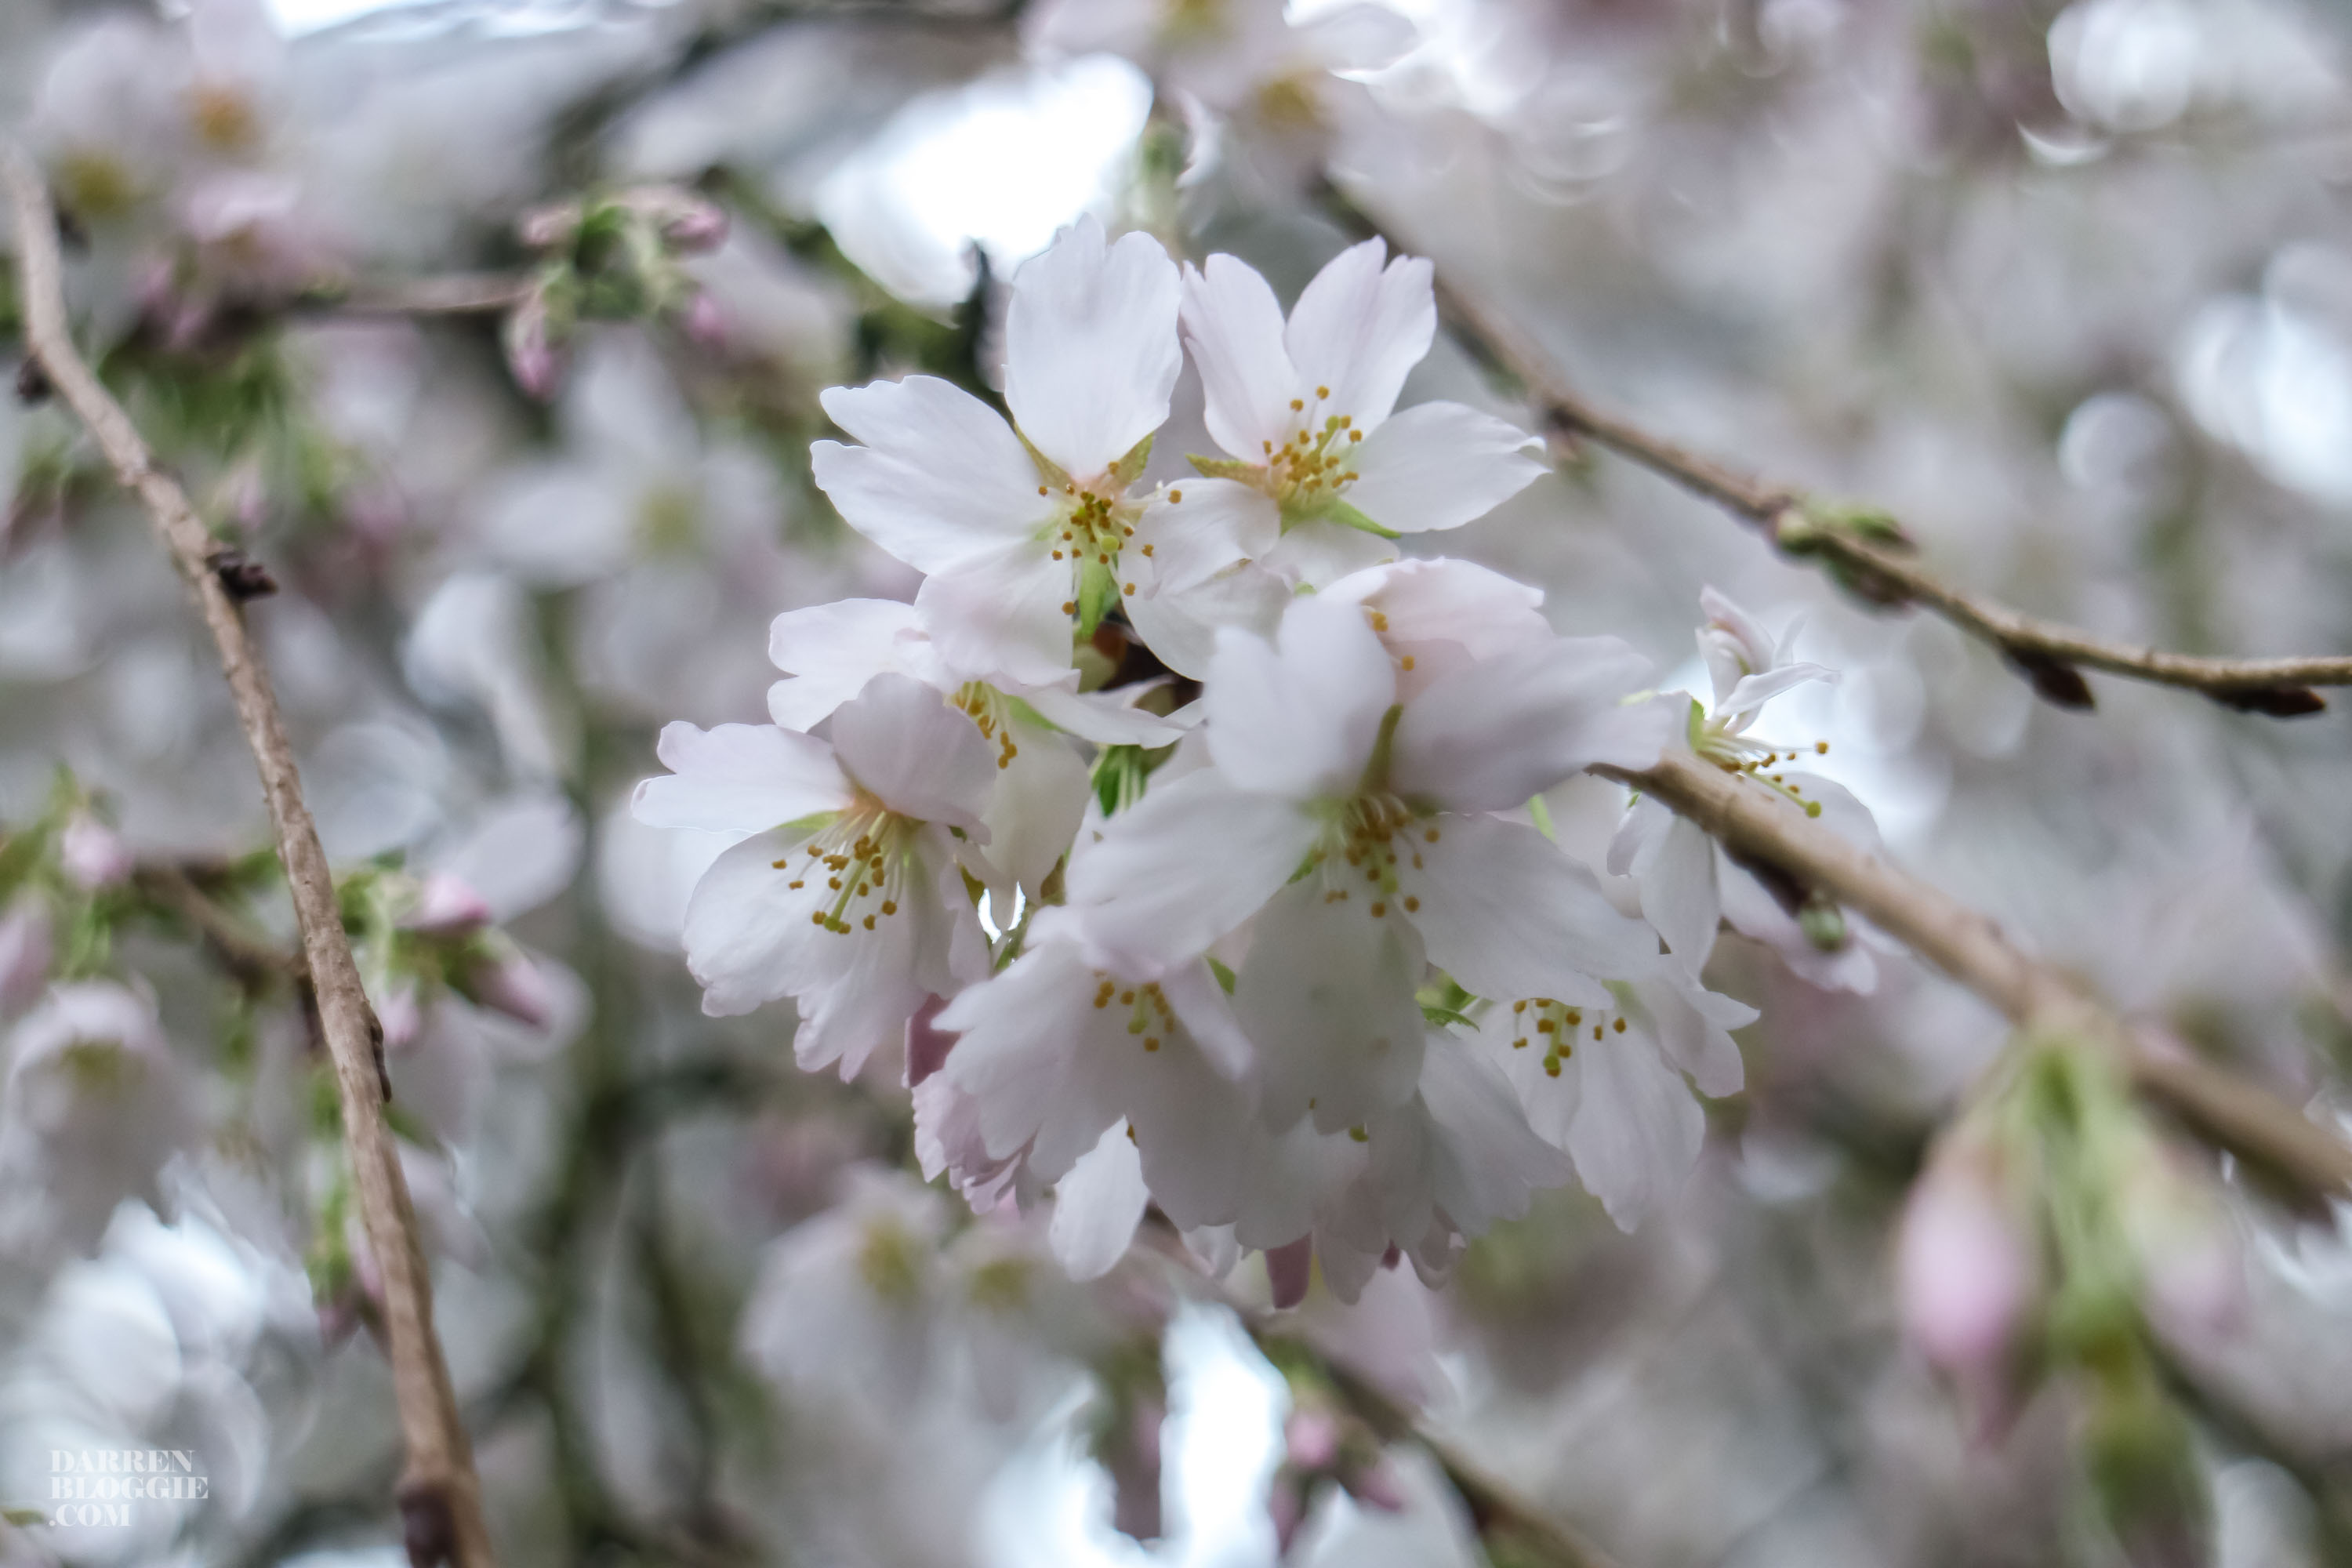 blossom-bliss-cherry-blossom-at-gardens-by-the-bay-darrenbloggie-2